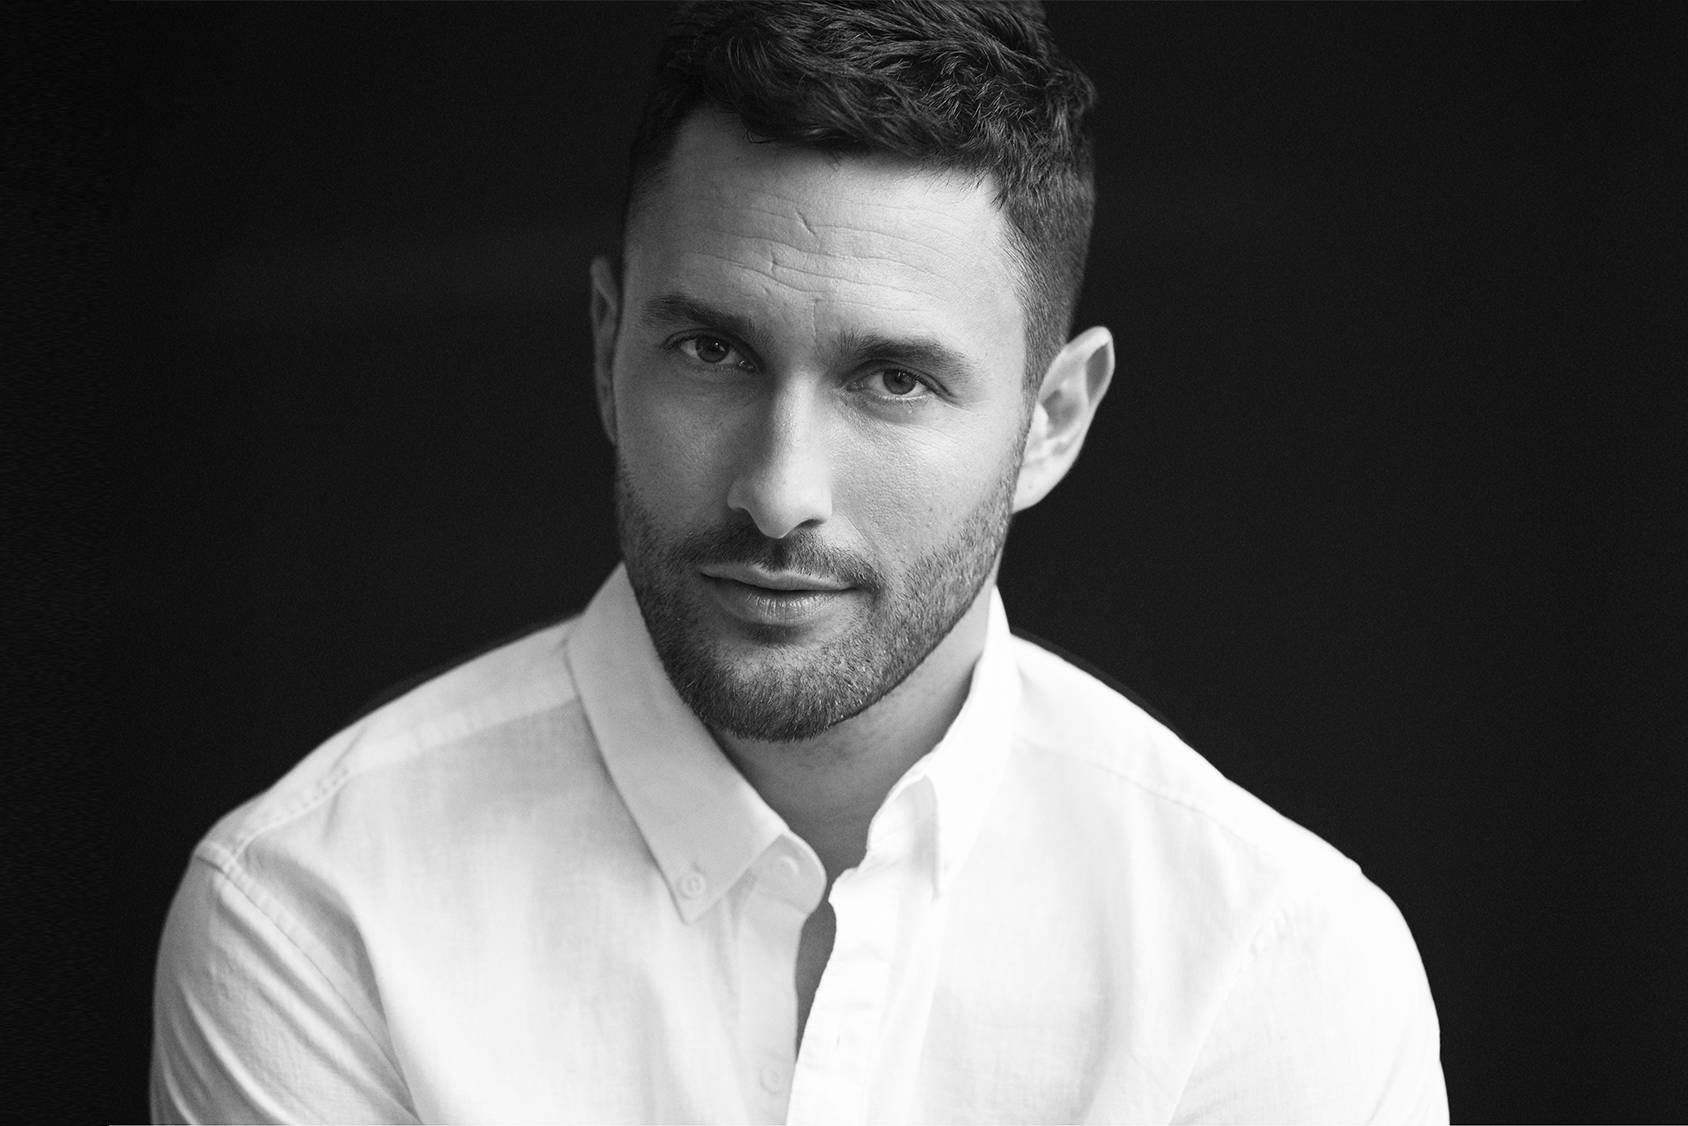 NOAH MILLS: I AM OBSESSED WITH SCANDINAVIAN ARCHITECTURE